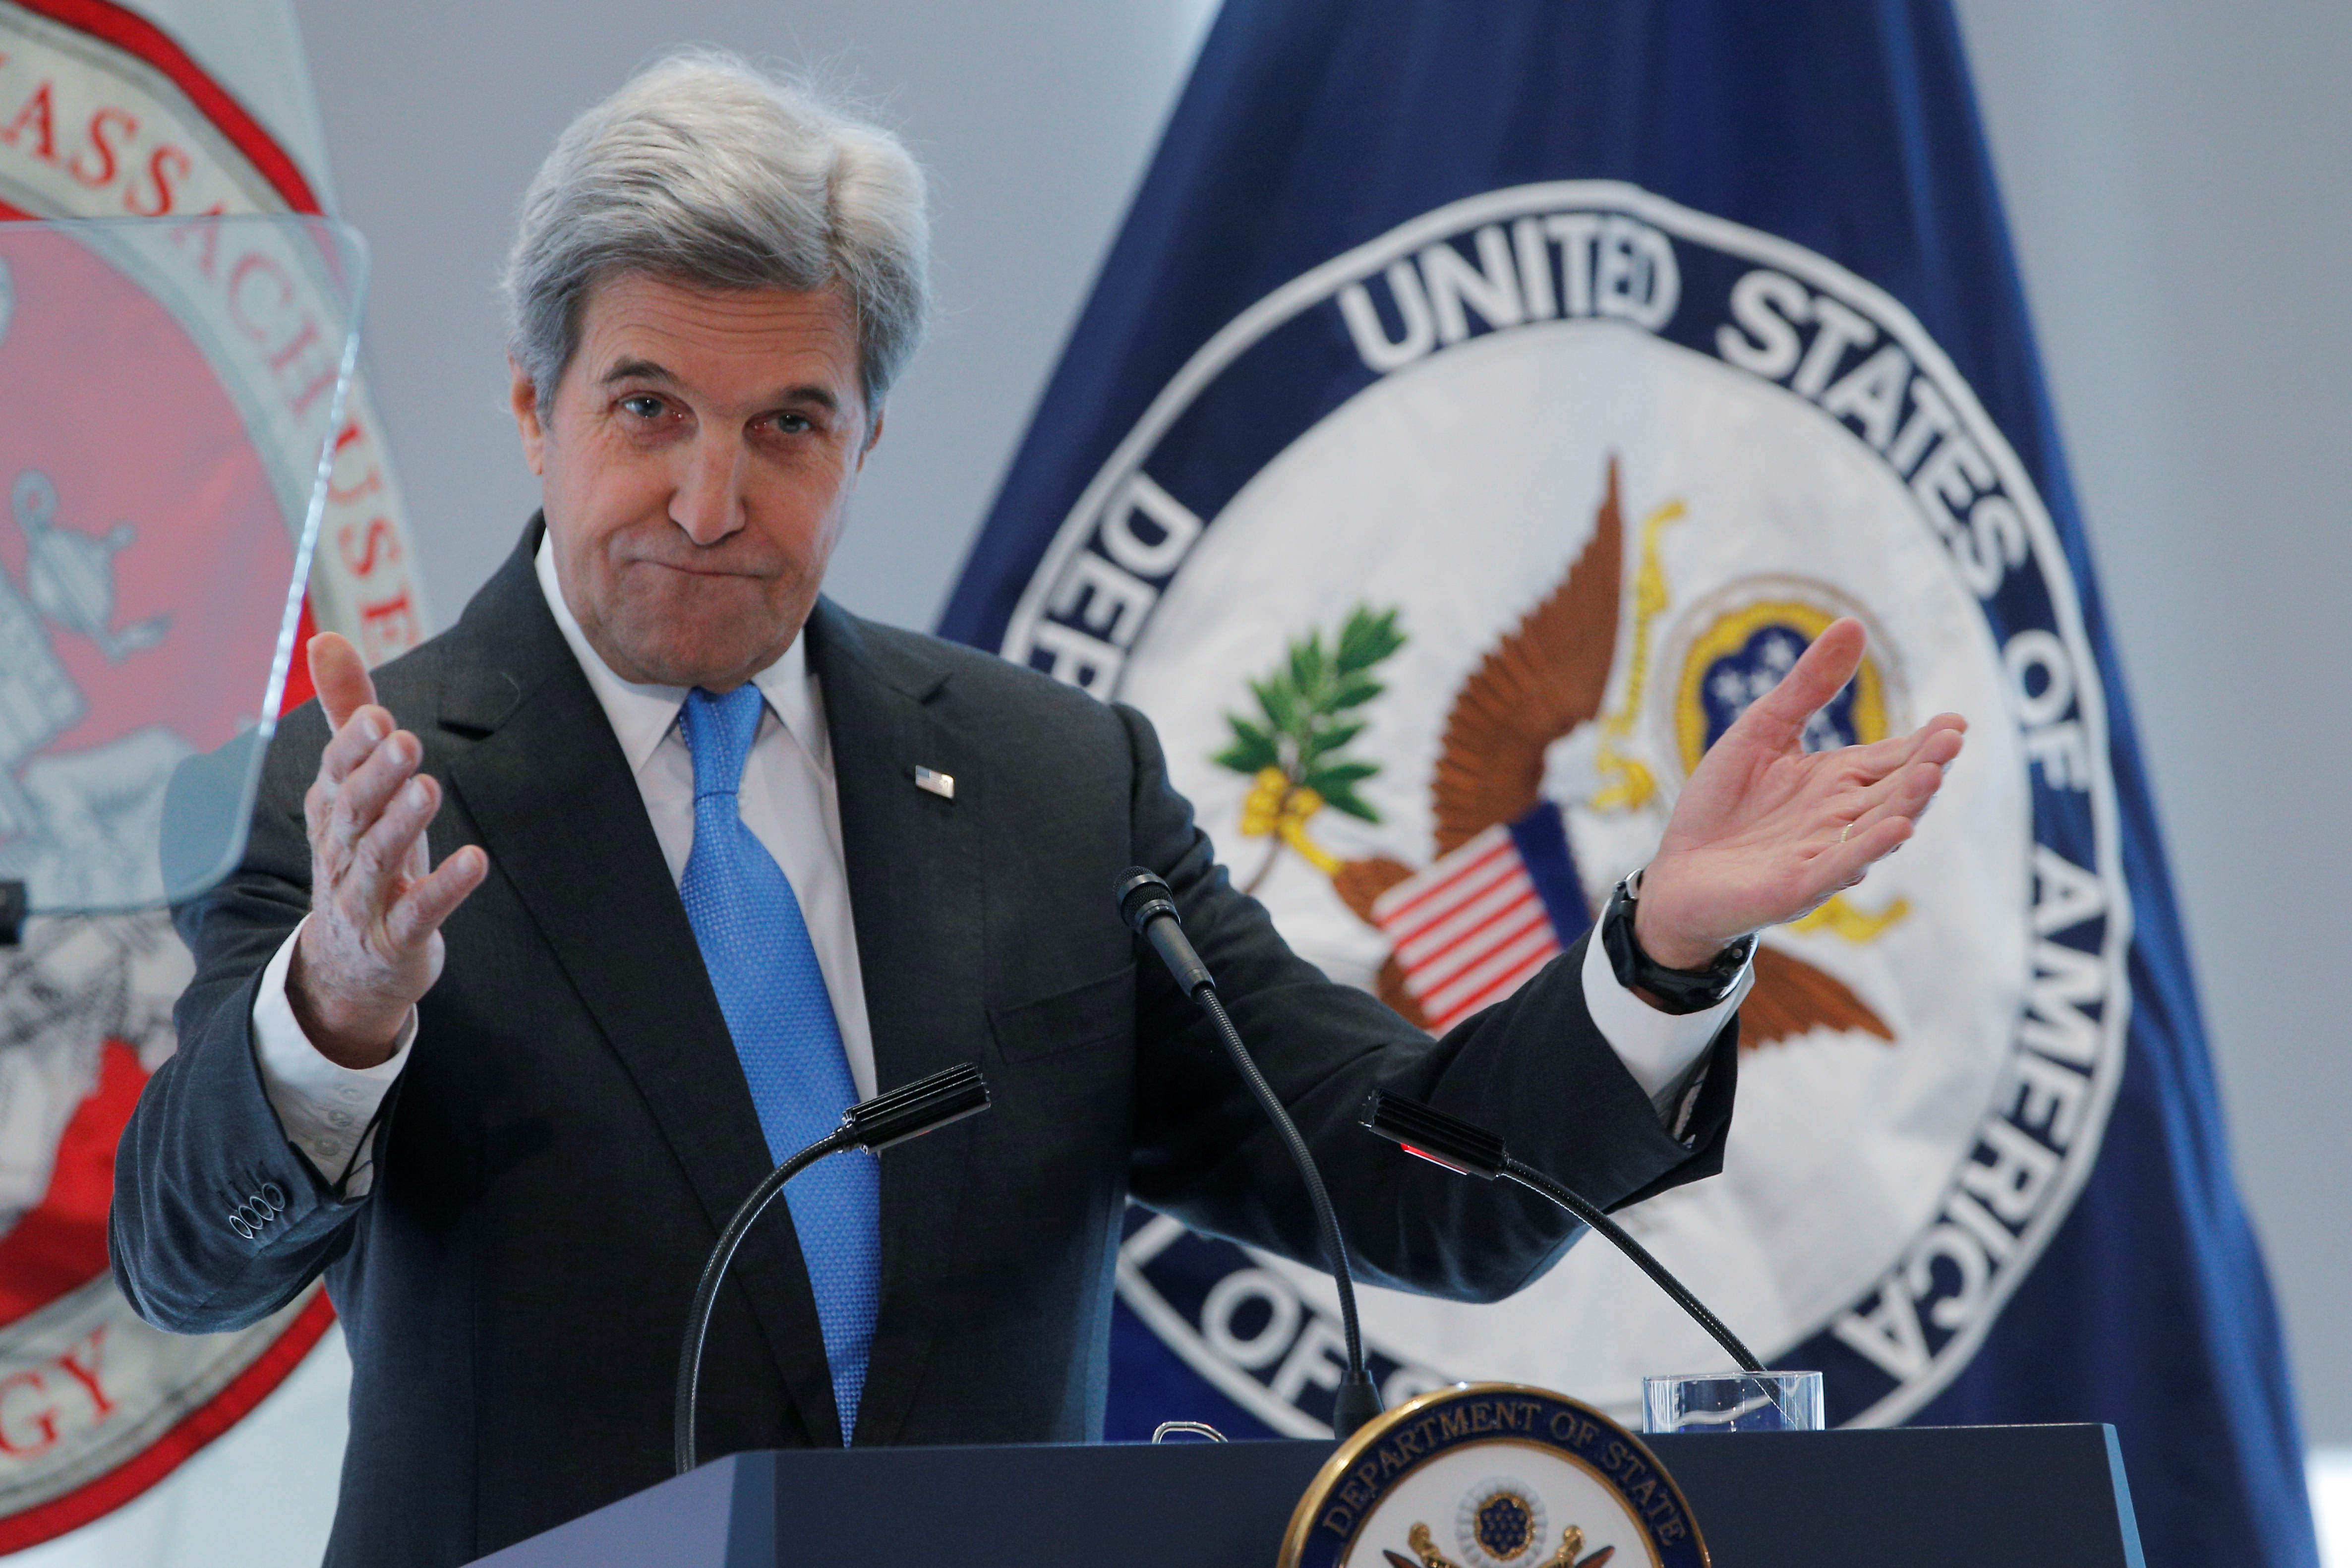 United States Secretary of State John Kerry speaks about climate change at Massachusetts Institute of Technology (MIT) in Cambridge